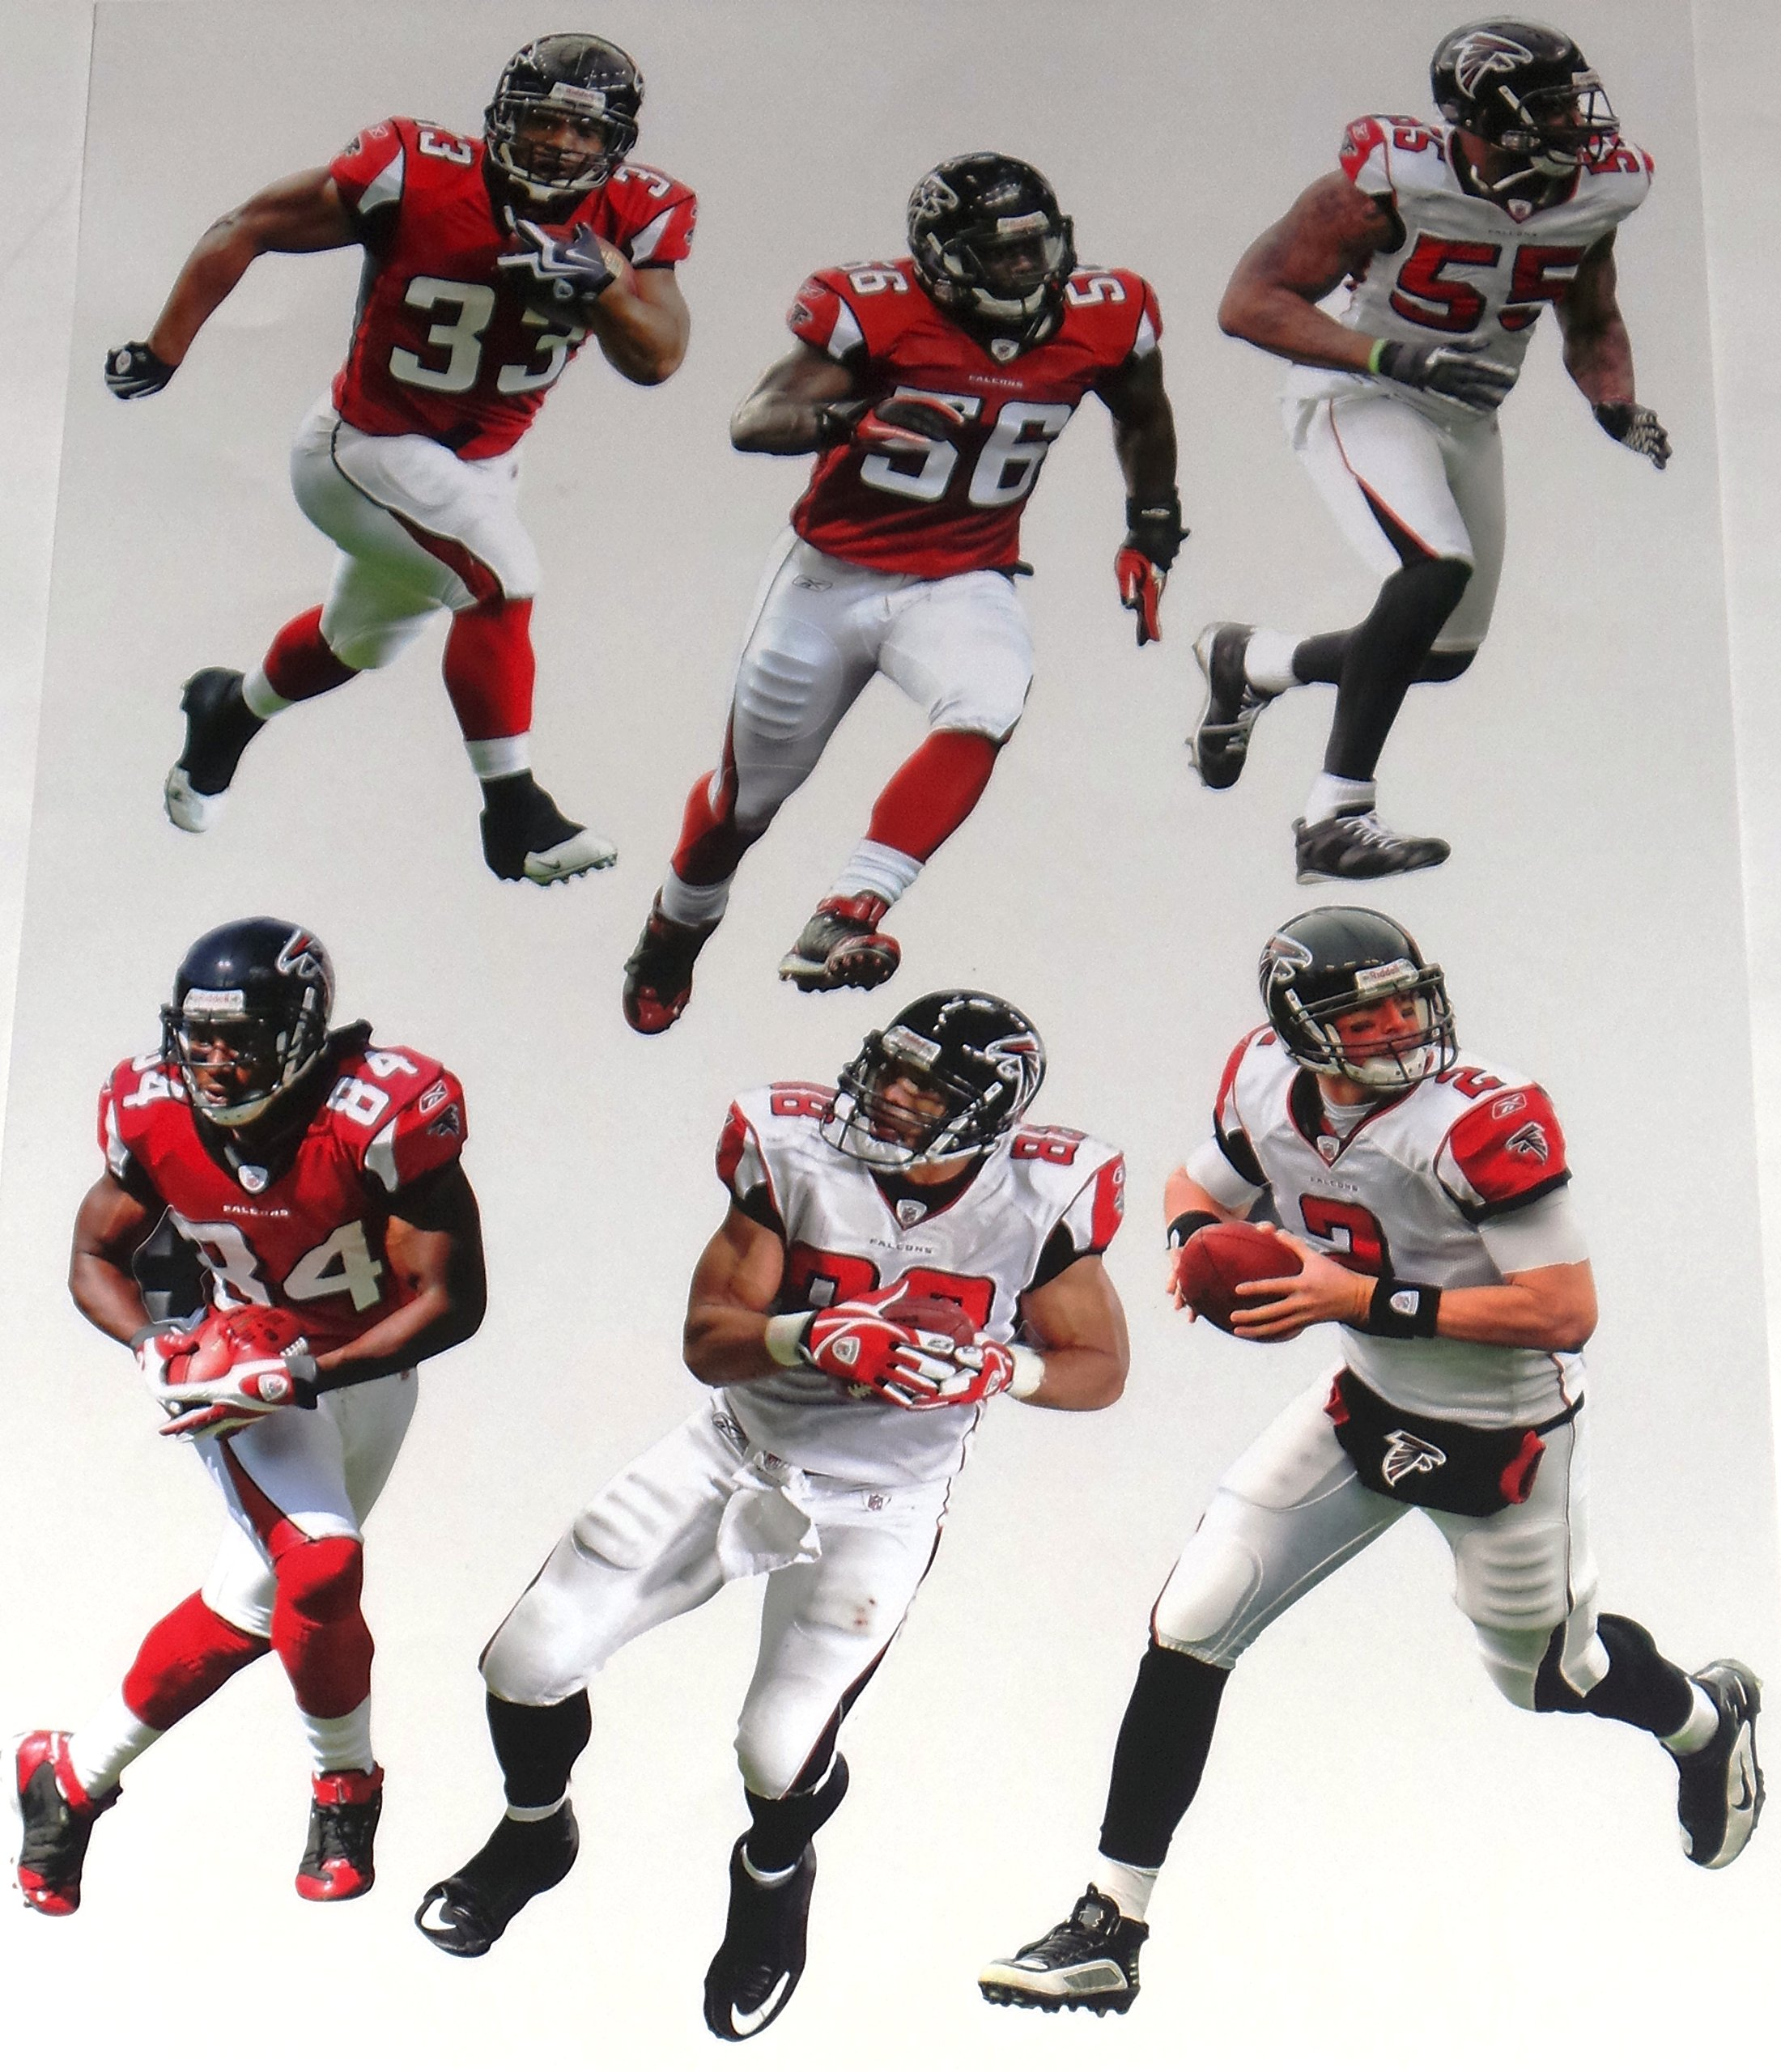 """Atlanta Falcons FATHEAD Team Set of 6 Players Official NFL Vinyl Wall Graphics - Each Player Graphic is 7"""" inches tall"""